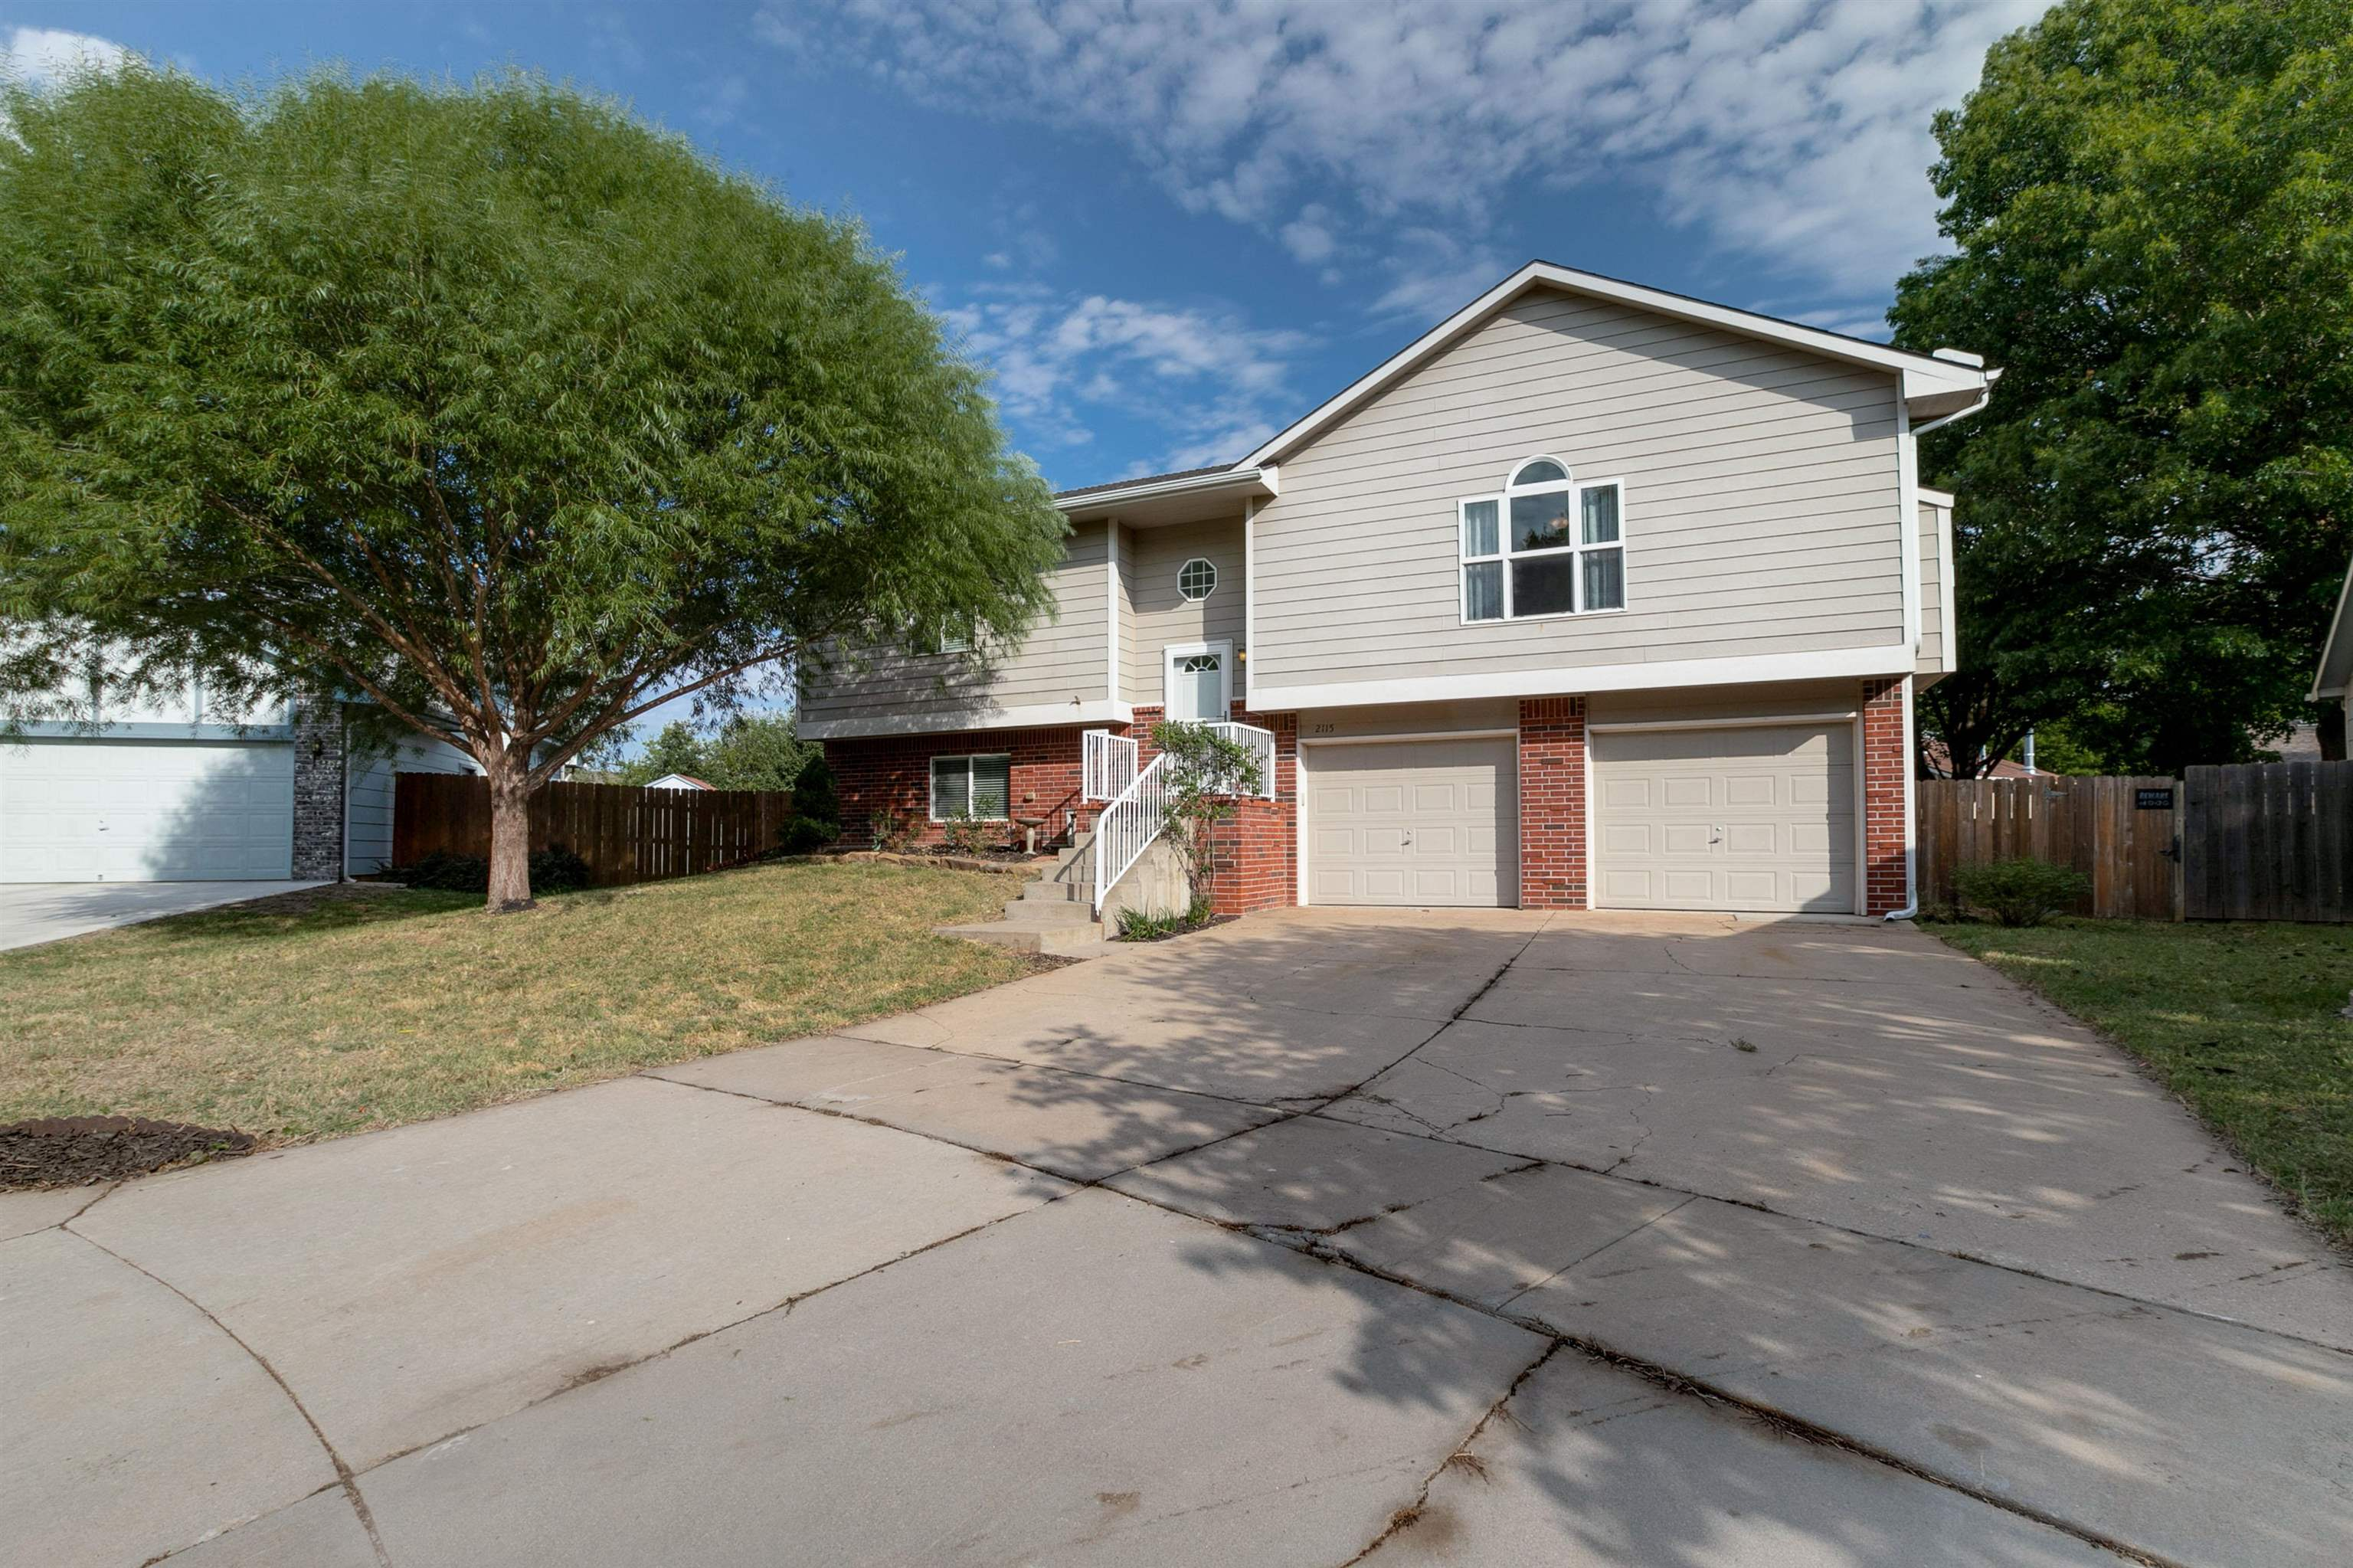 This 4 BR home is  in the Maize School district on a cul de sac with large fenced backyard.  The kit